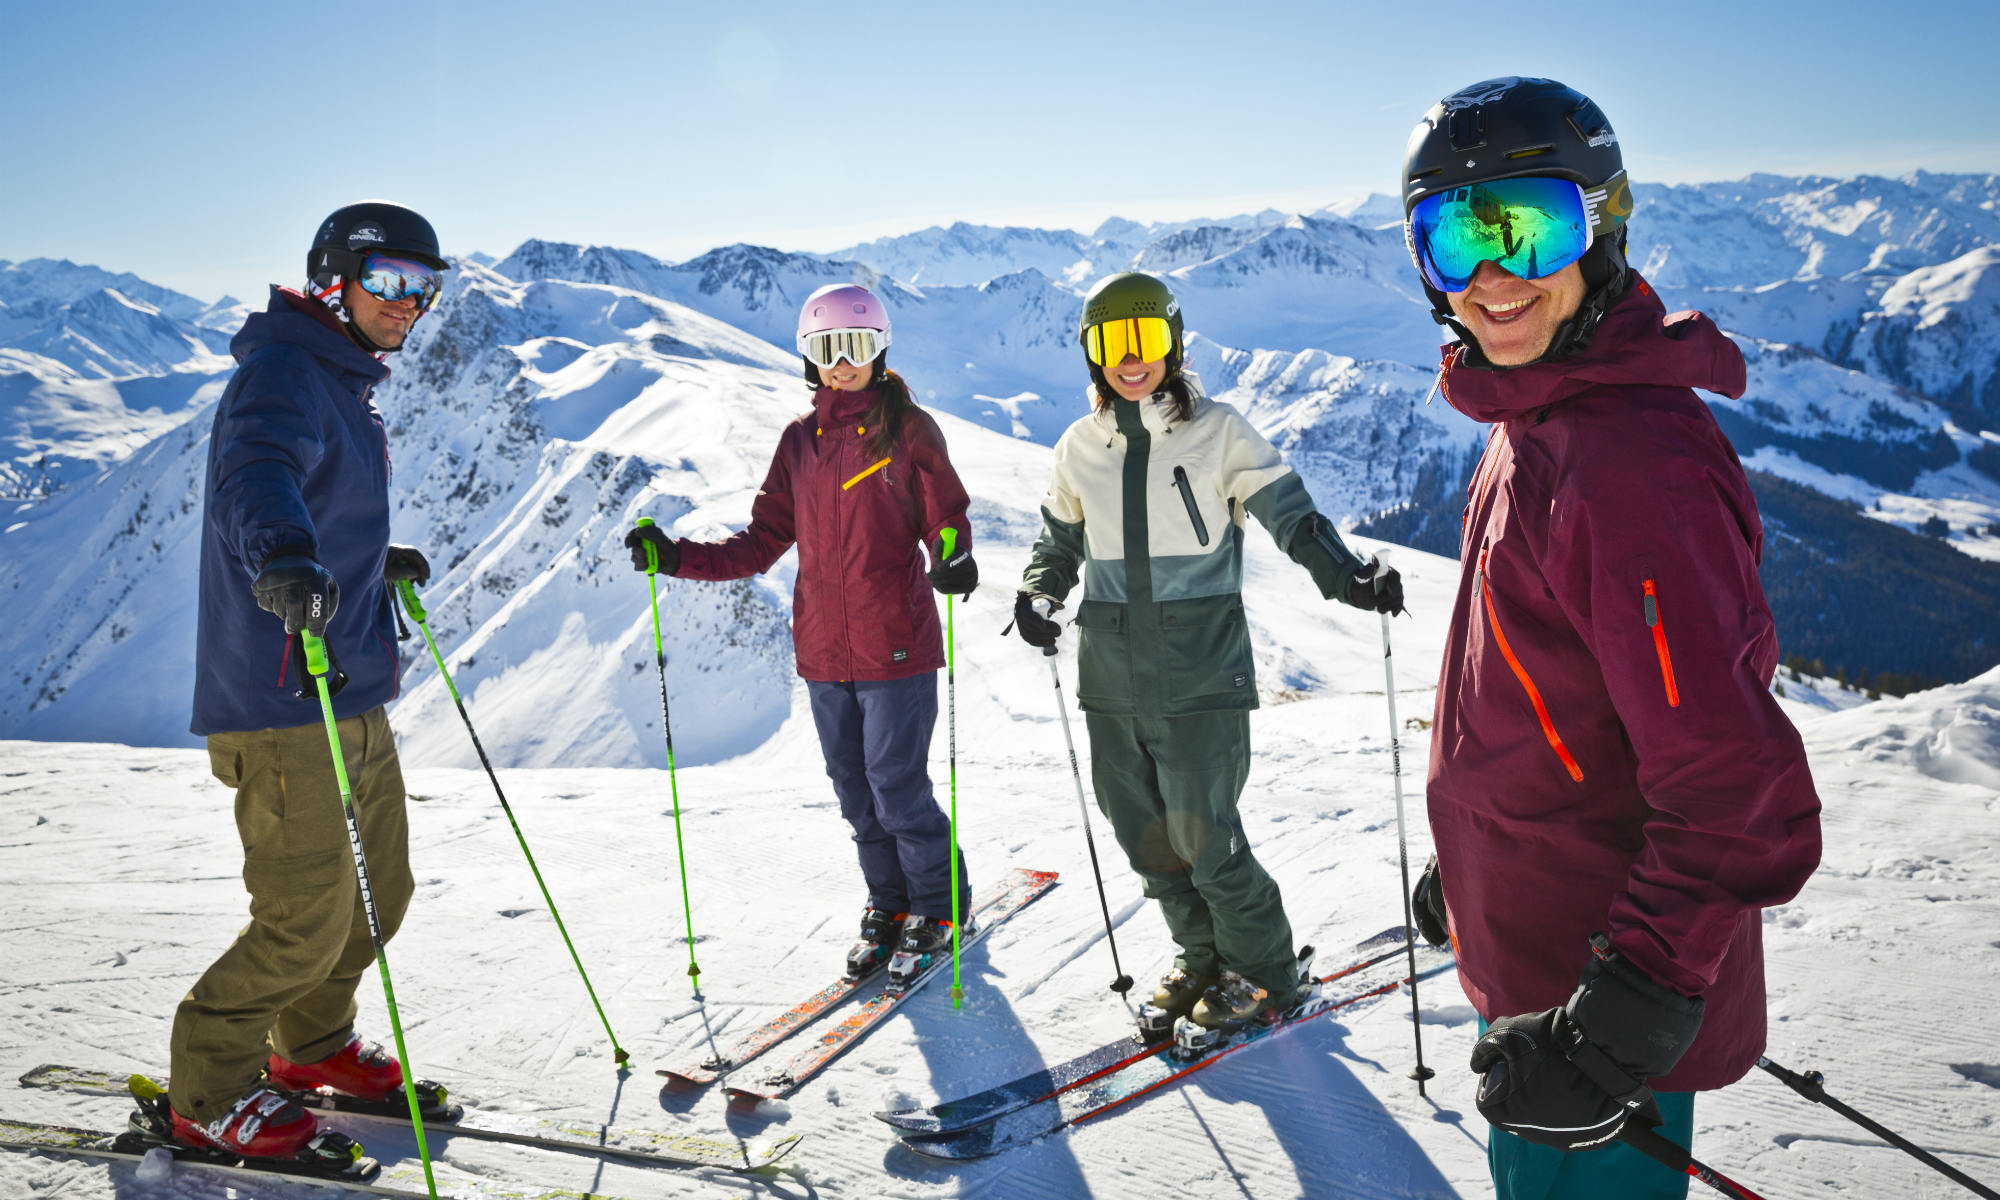 Young adults standing on a mountain peak in Saalbach-Hinterglemm and enjoying the view over the snowy surroundings.